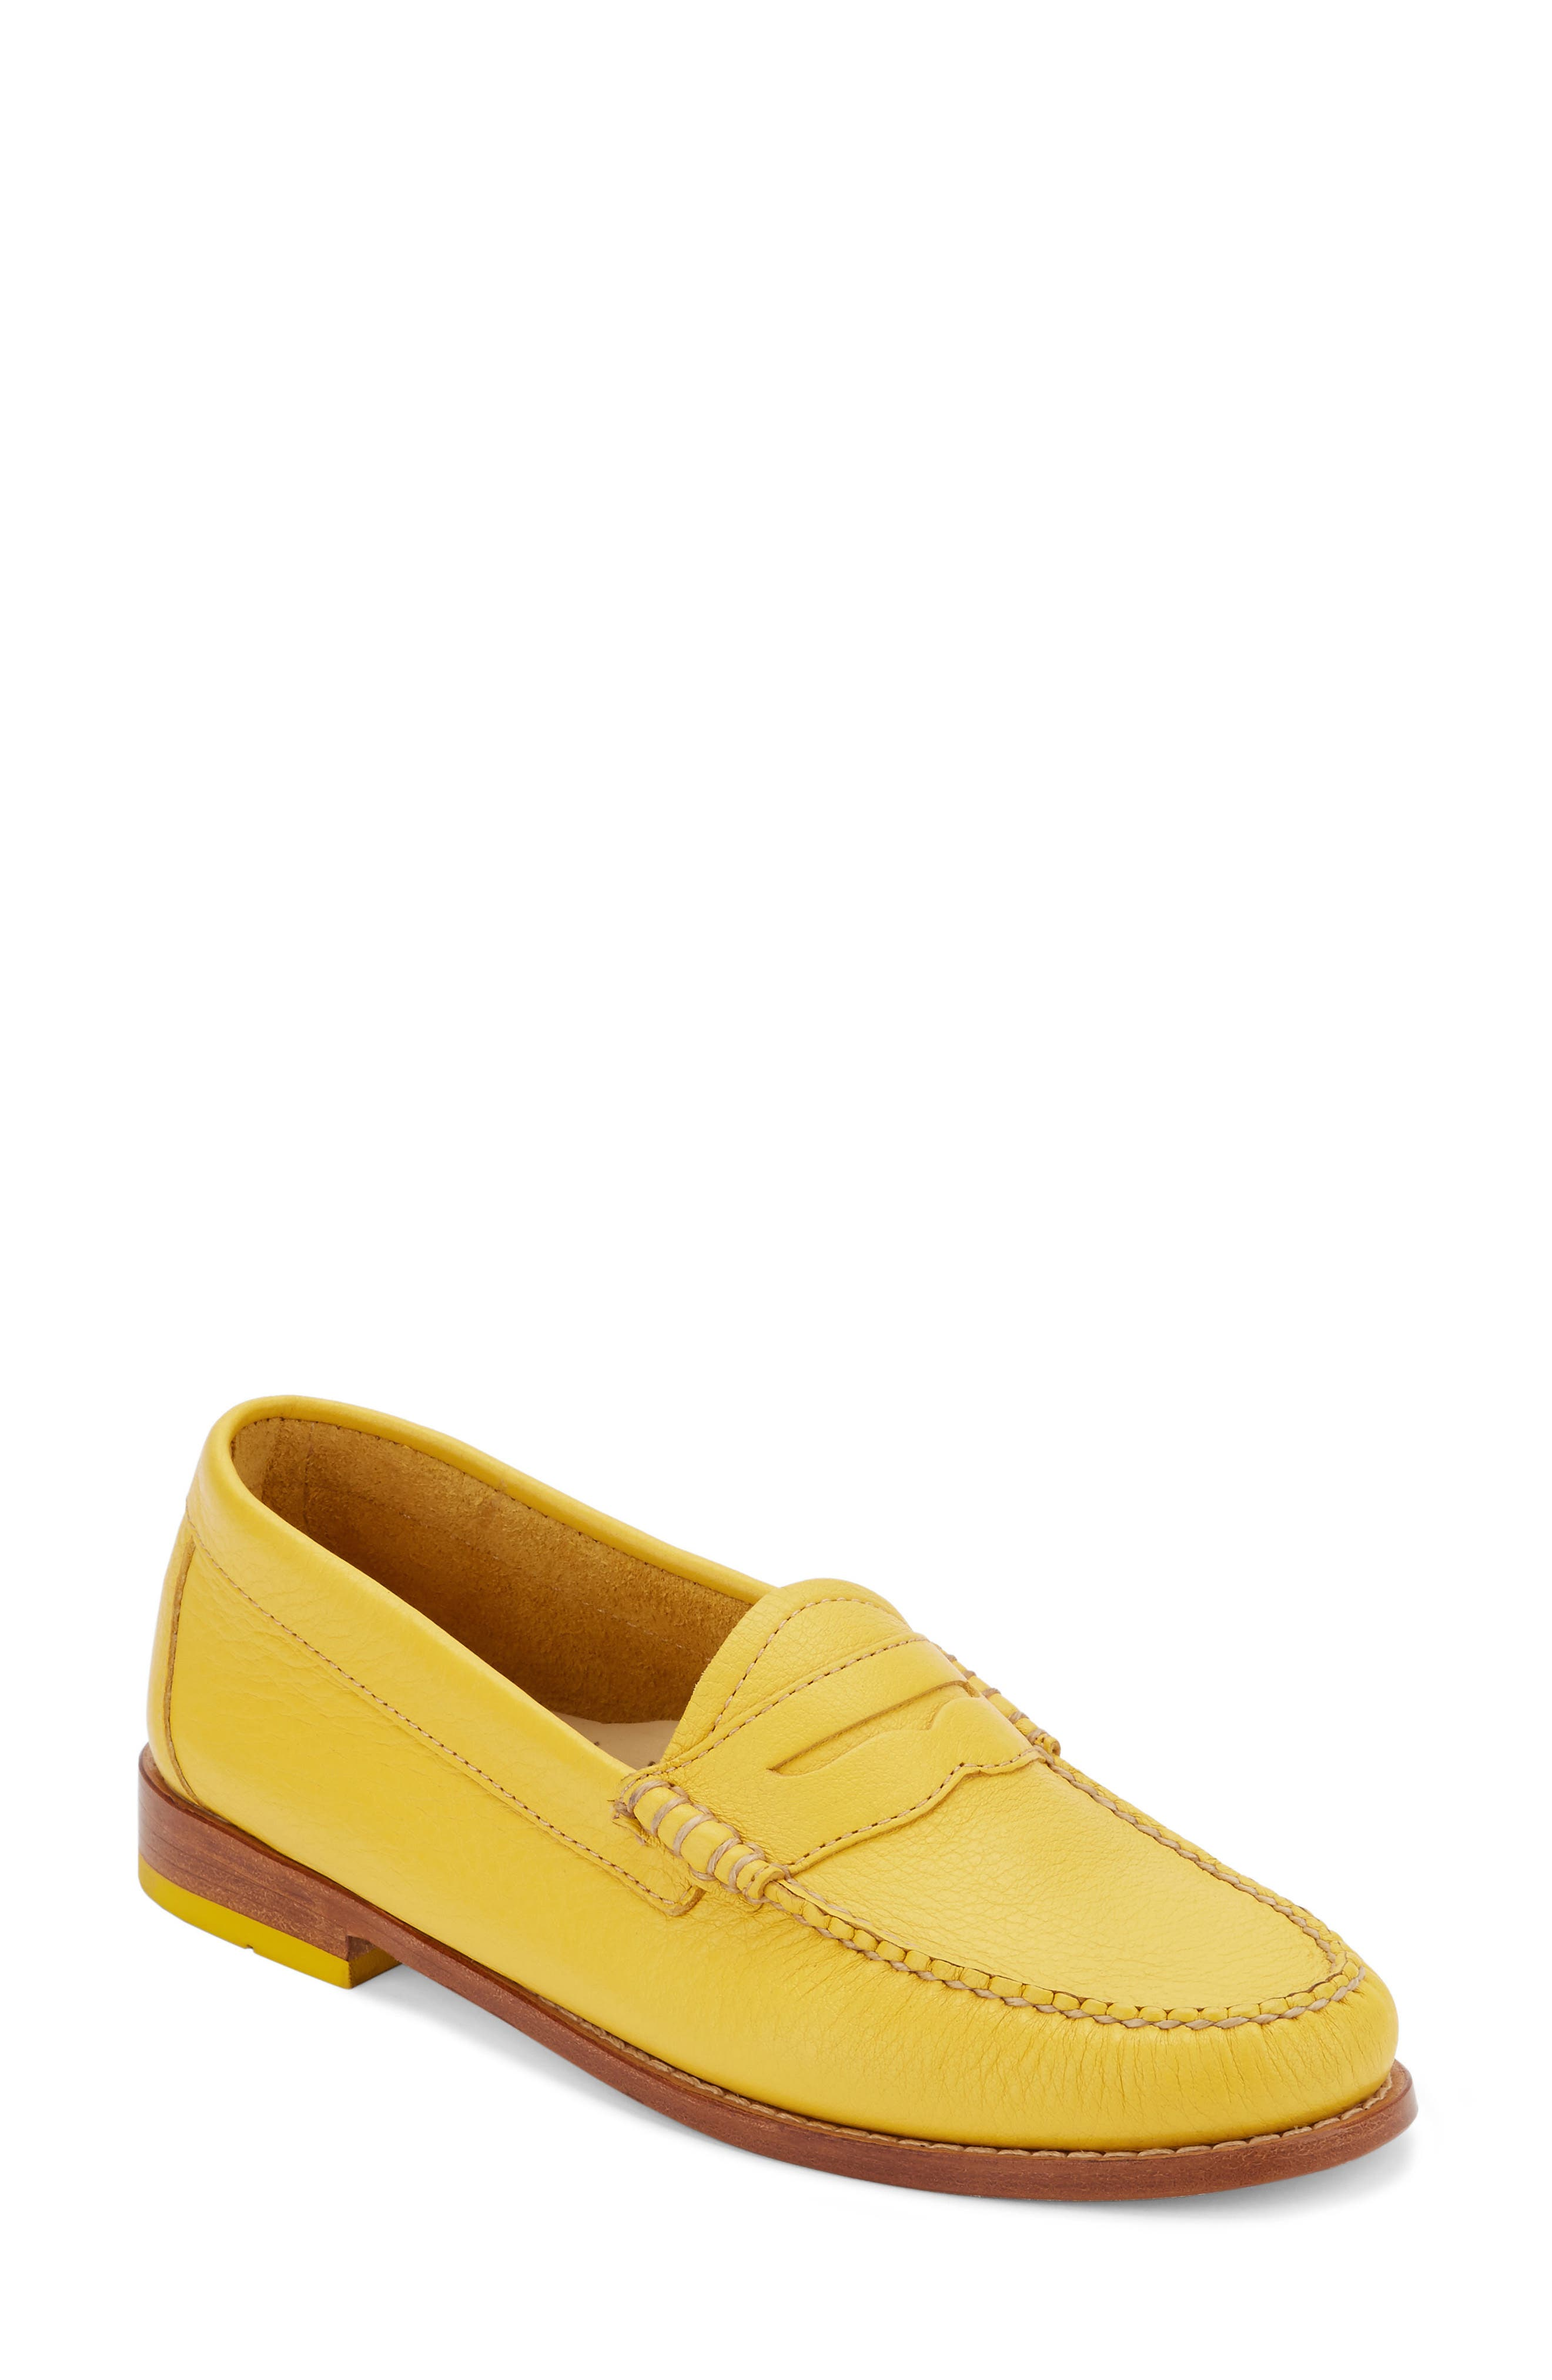 'Whitney' Loafer,                             Main thumbnail 17, color,